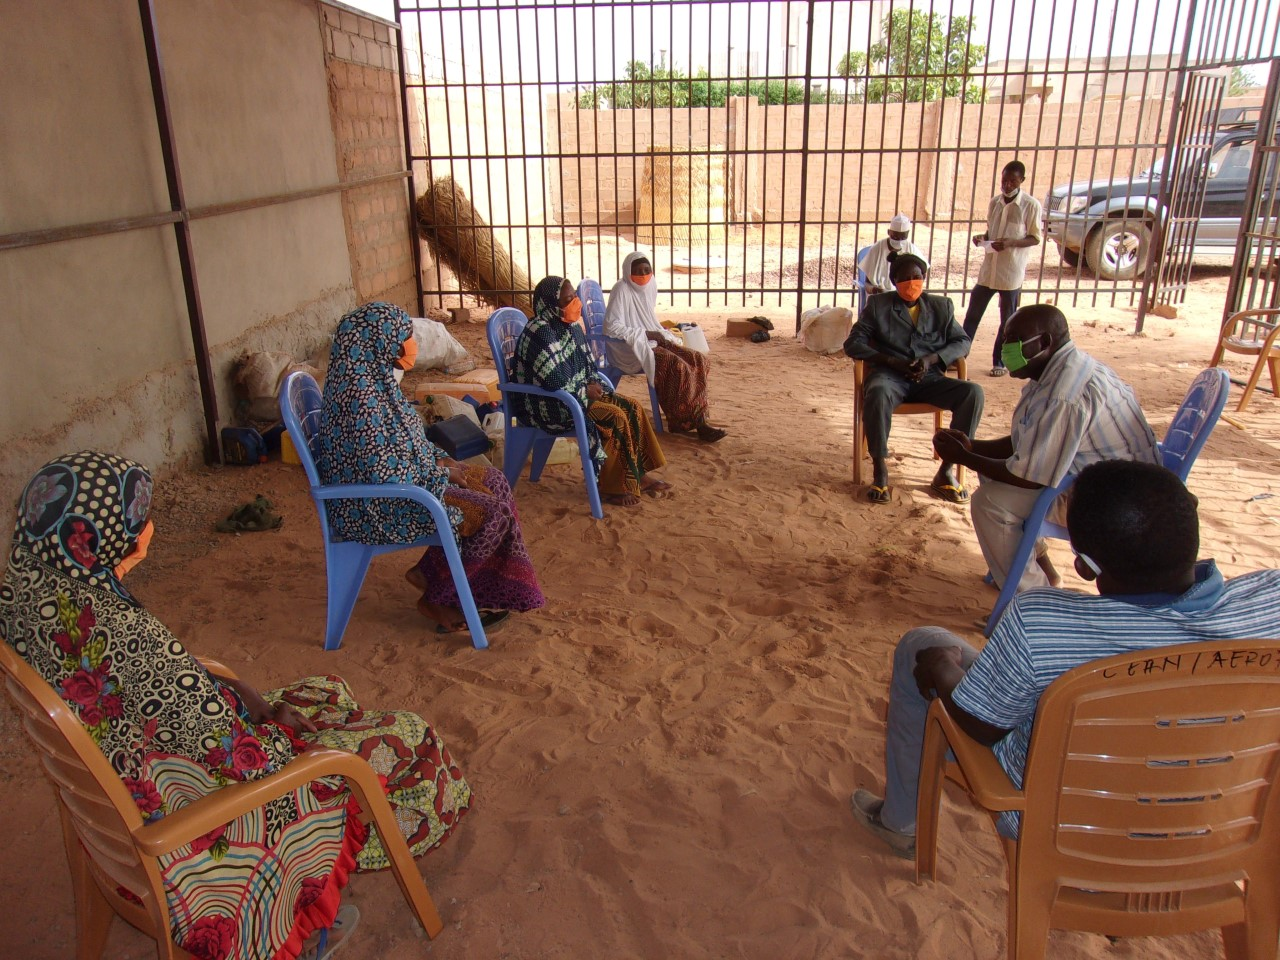 Muslim women identified as leaders in their community of Basra. They were participating in a COVID-19 prevention training program given by the EERN's WASH department.